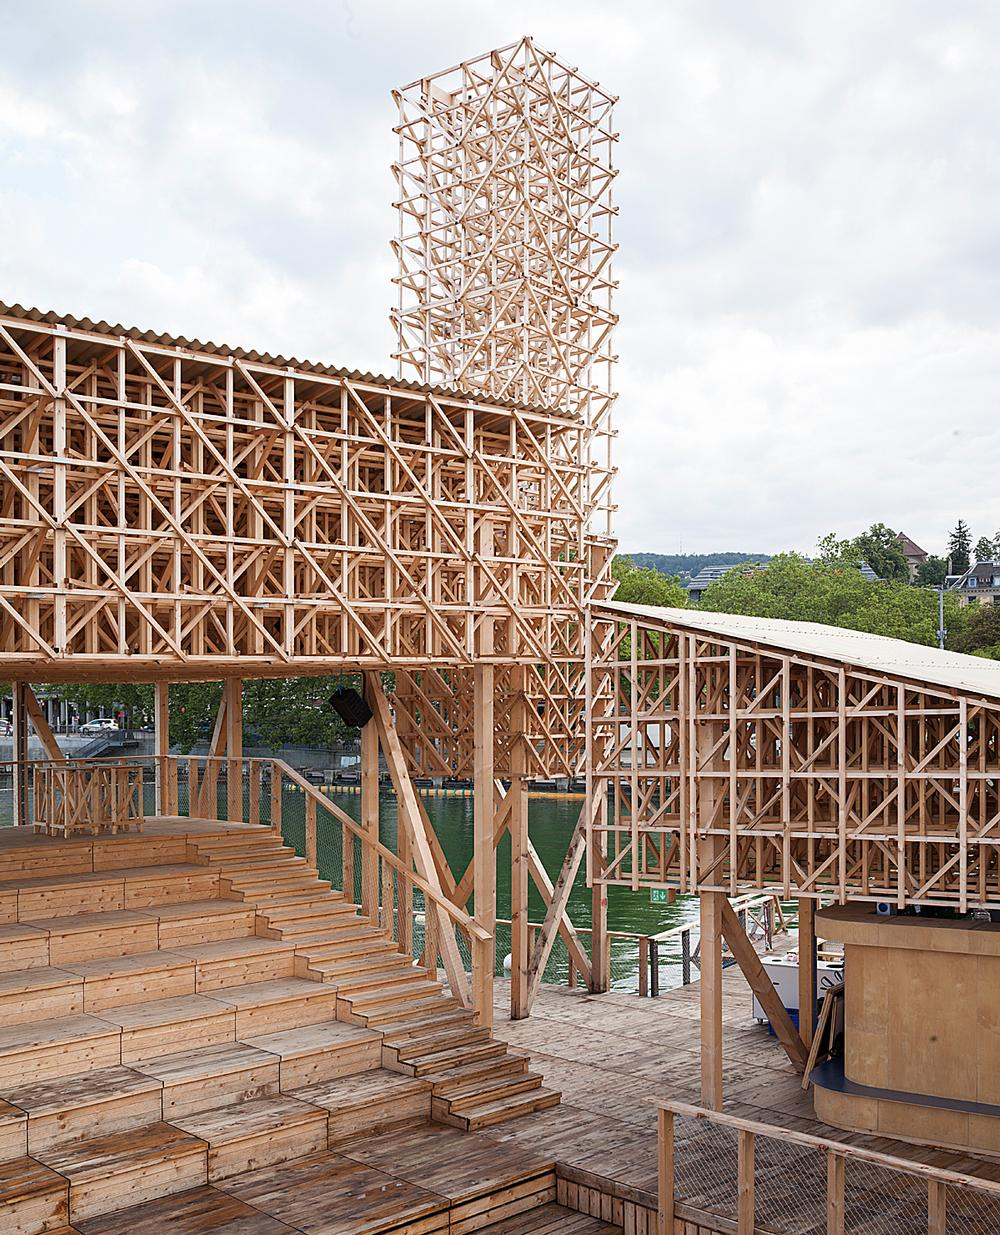 Tom Emerson collaborated with students from ETH Zurich to build the Pavilion of Reflections